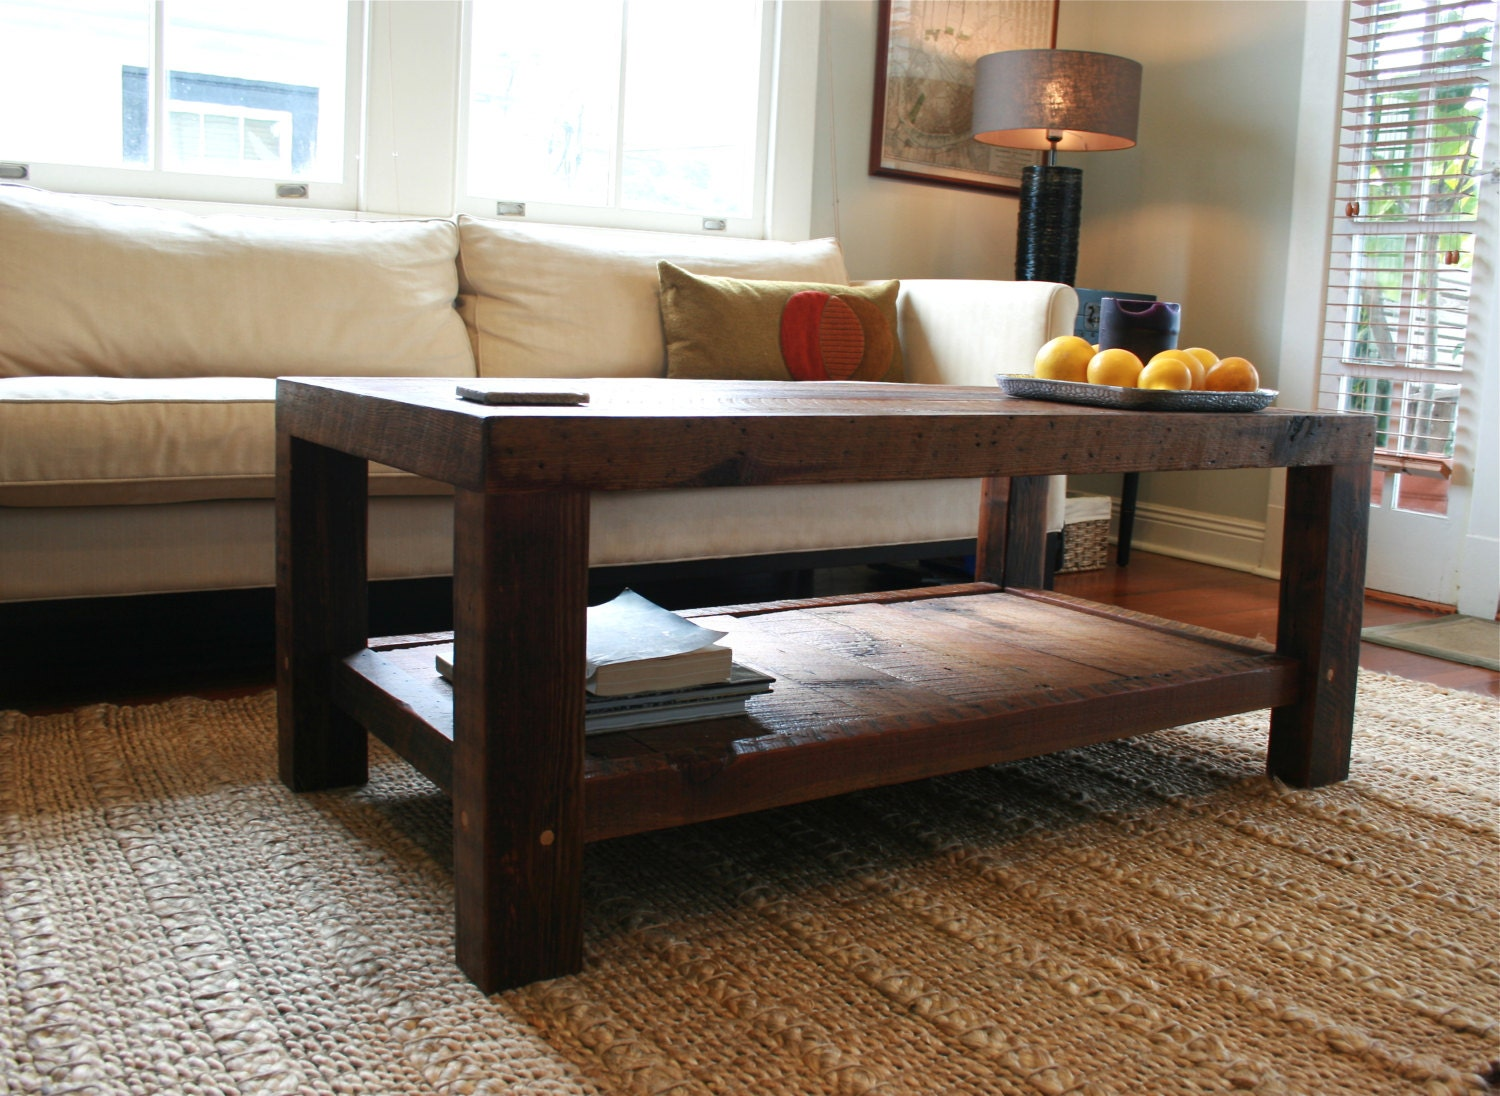 ... New Orleans Barge Board and Reclaimed Wood. 🔎zoom - Oversized Coffee Table Made From New Orleans Barge Board And